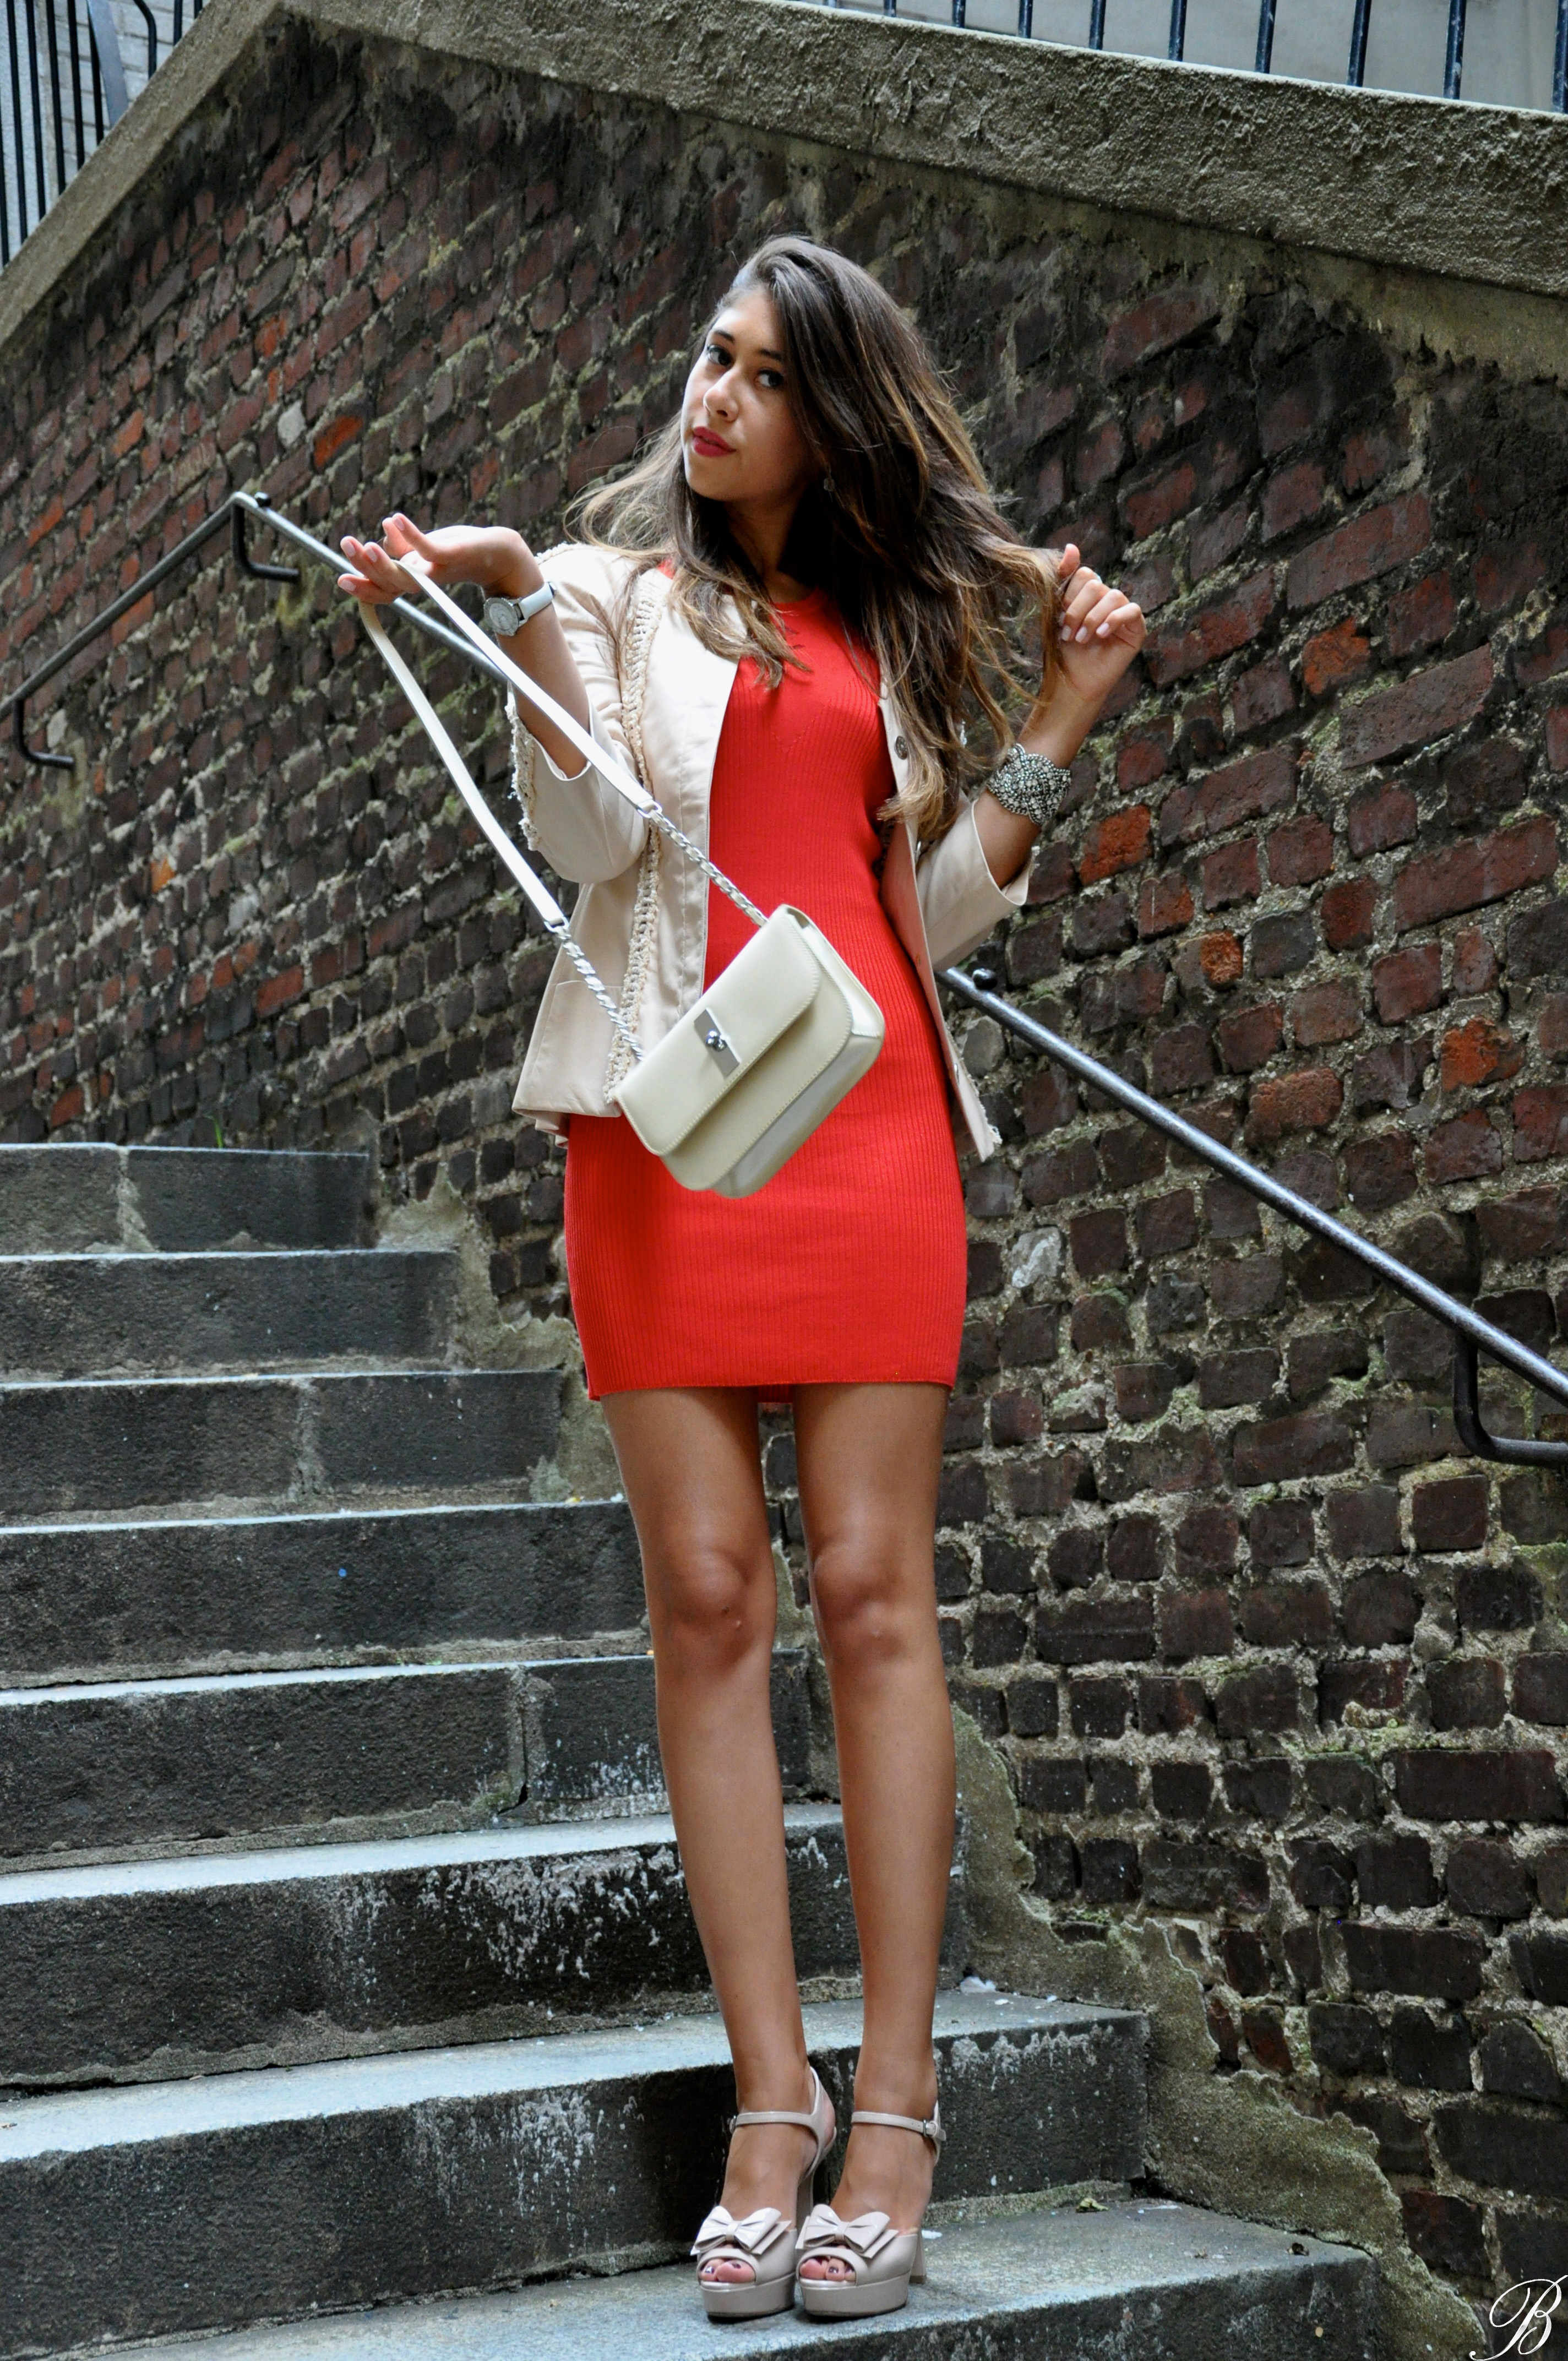 dd2f06d74d How To Wear Beige Leather Heeled Sandals With a Red Bodycon Dress (3 ...